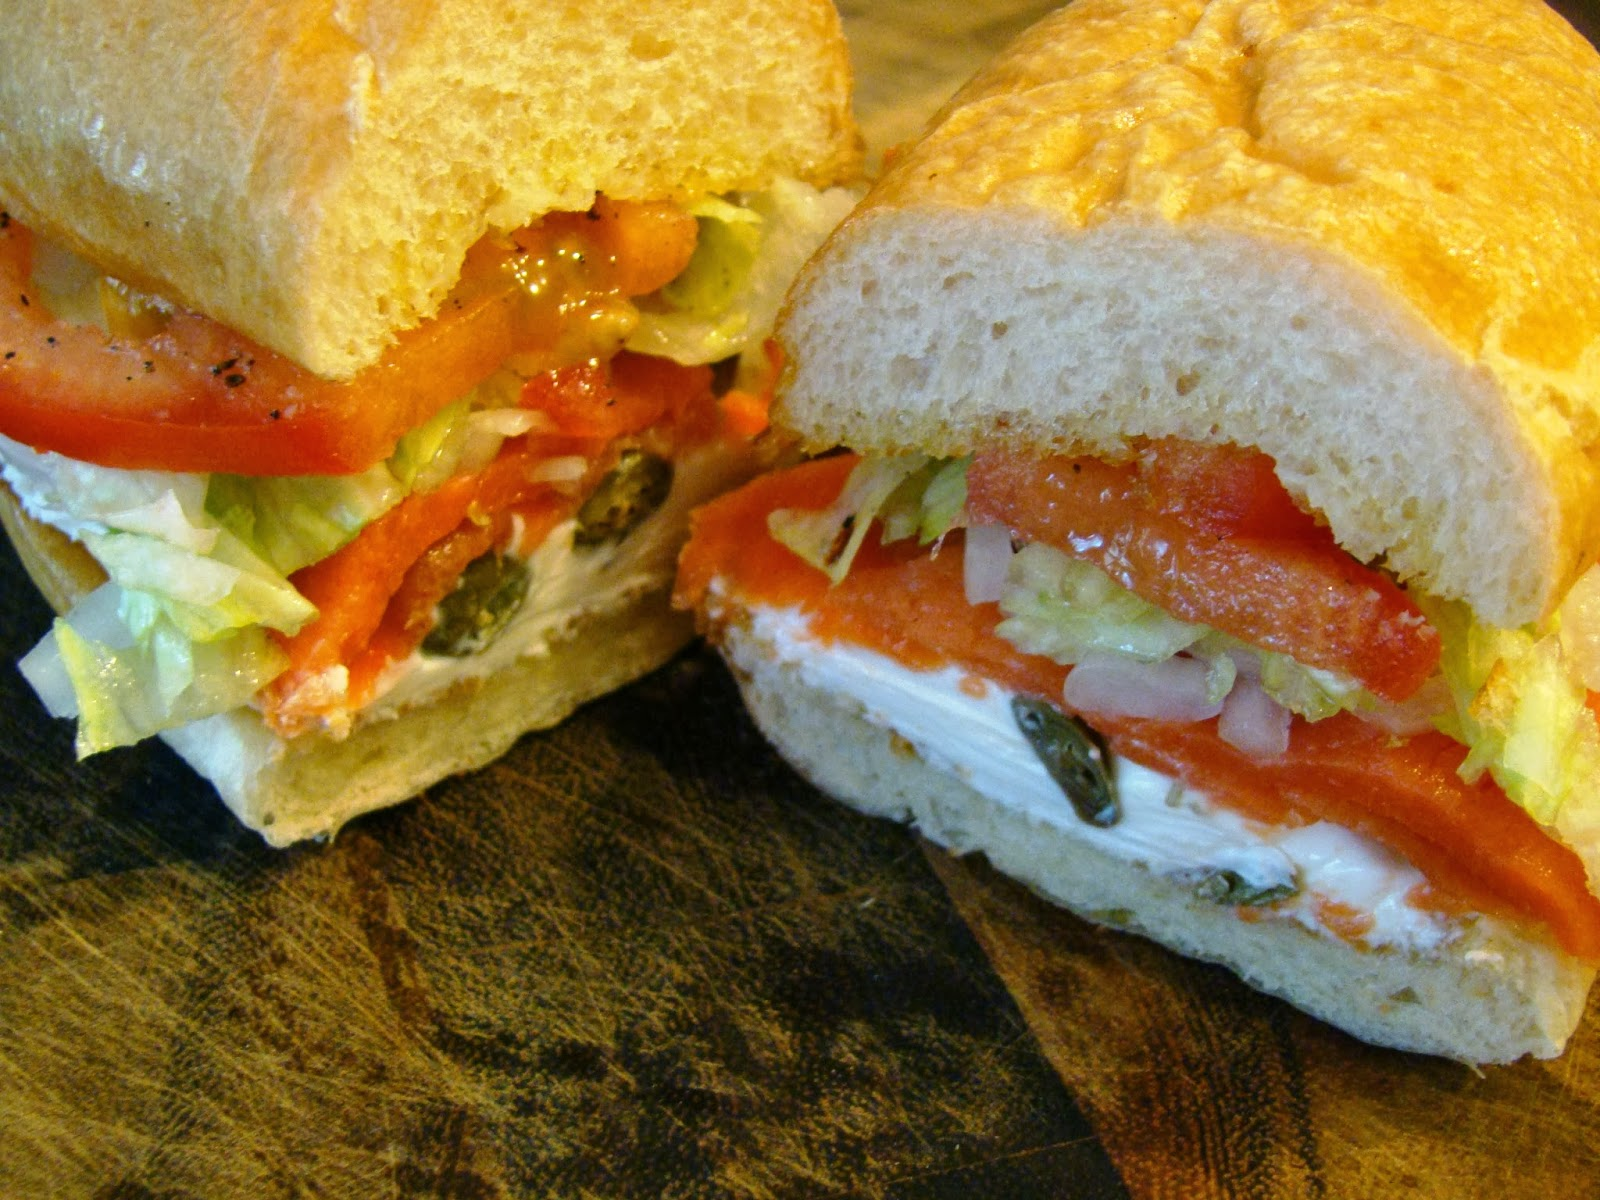 Soup Spice Everything Nice: Smoked Salmon and Cream Cheese Sandwich